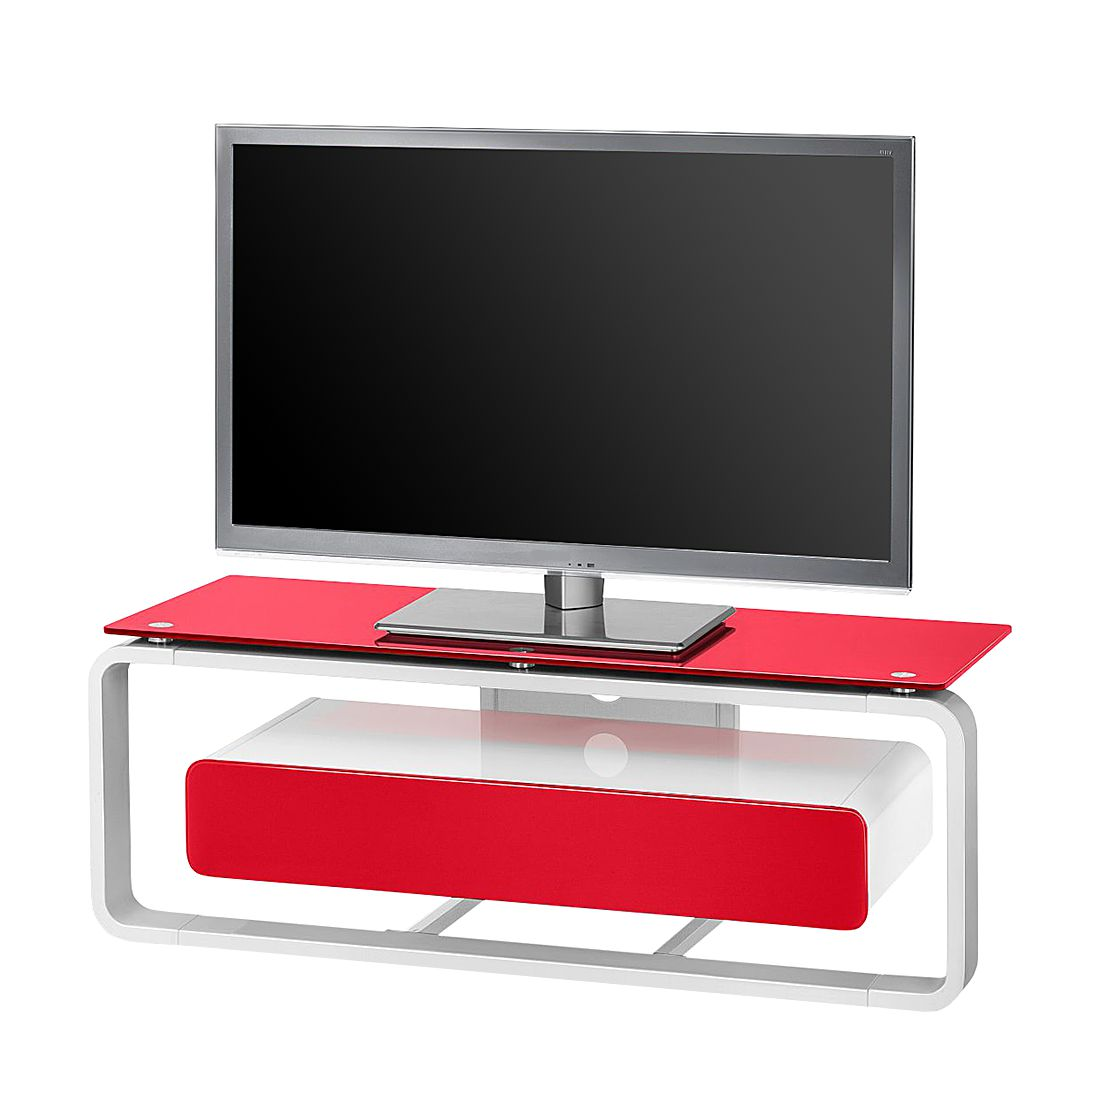 Home 24 - Meuble tv shanon i - blanc brillant - blanc / verre rouge - 110 cm, maja möbel